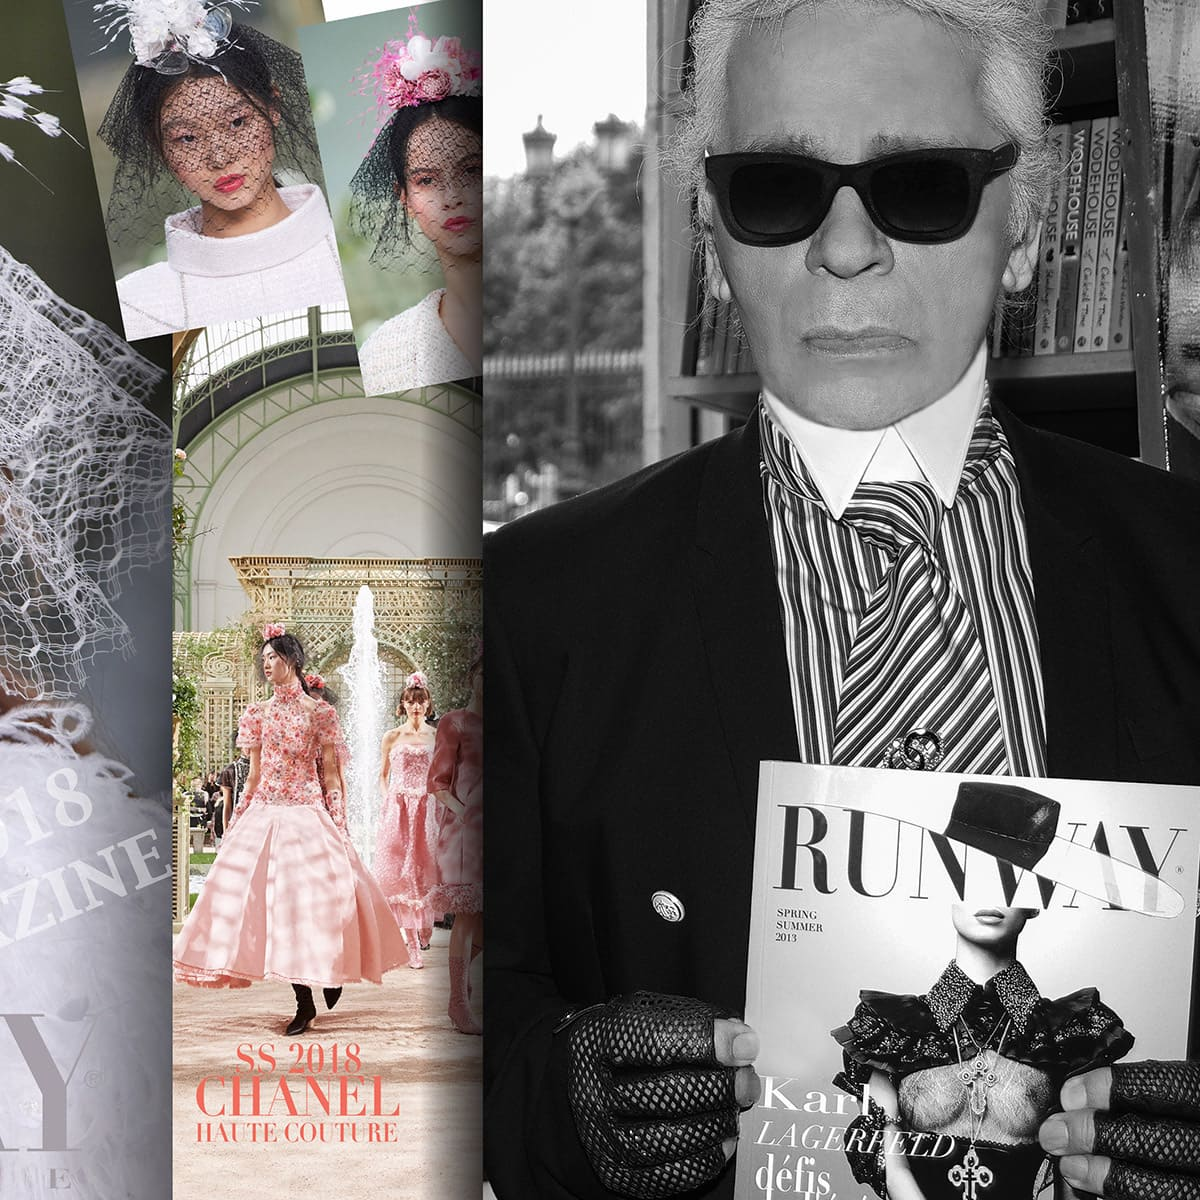 Karl Lagerfeld in support of RUNWAY MAGAZINE